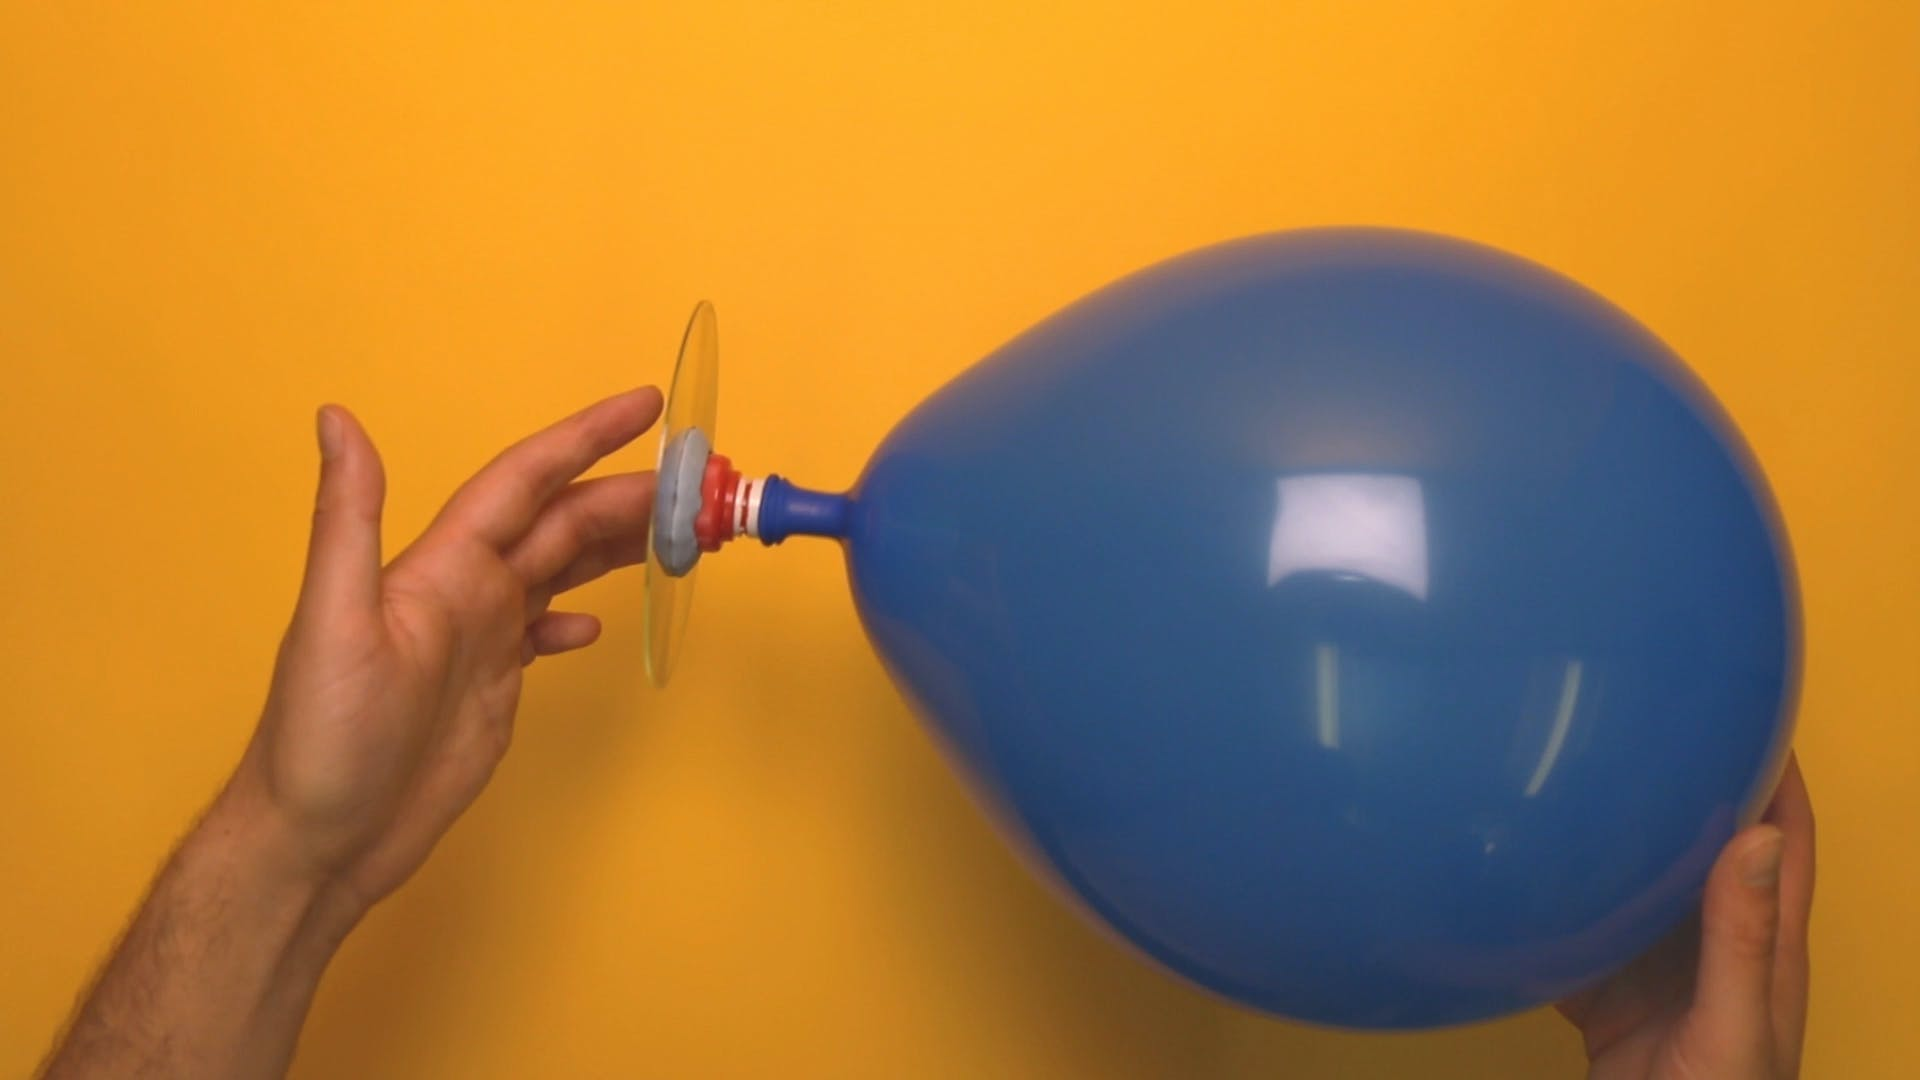 A finished balloon hovercraft